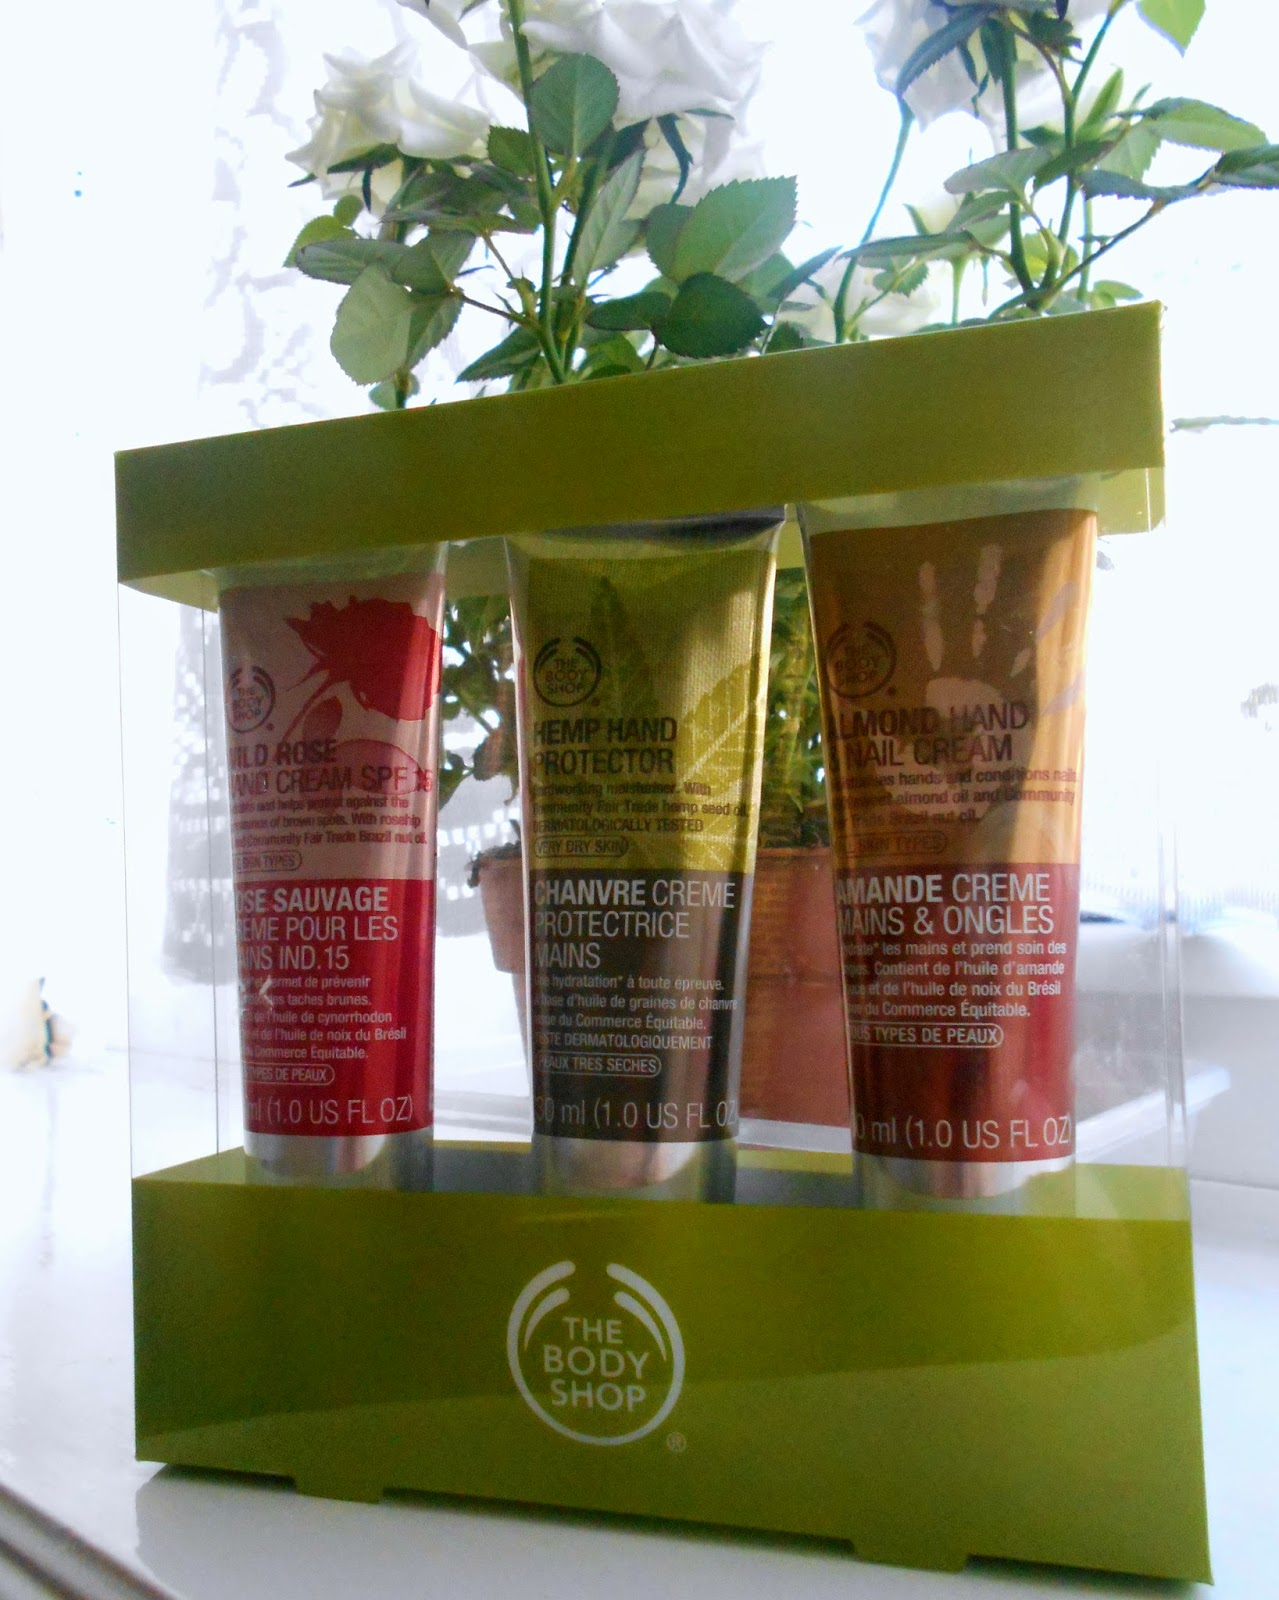 The Body Shop - Wild Rose Hand Cream, Hemp Hand Protector and Almond Hand Cream - Review